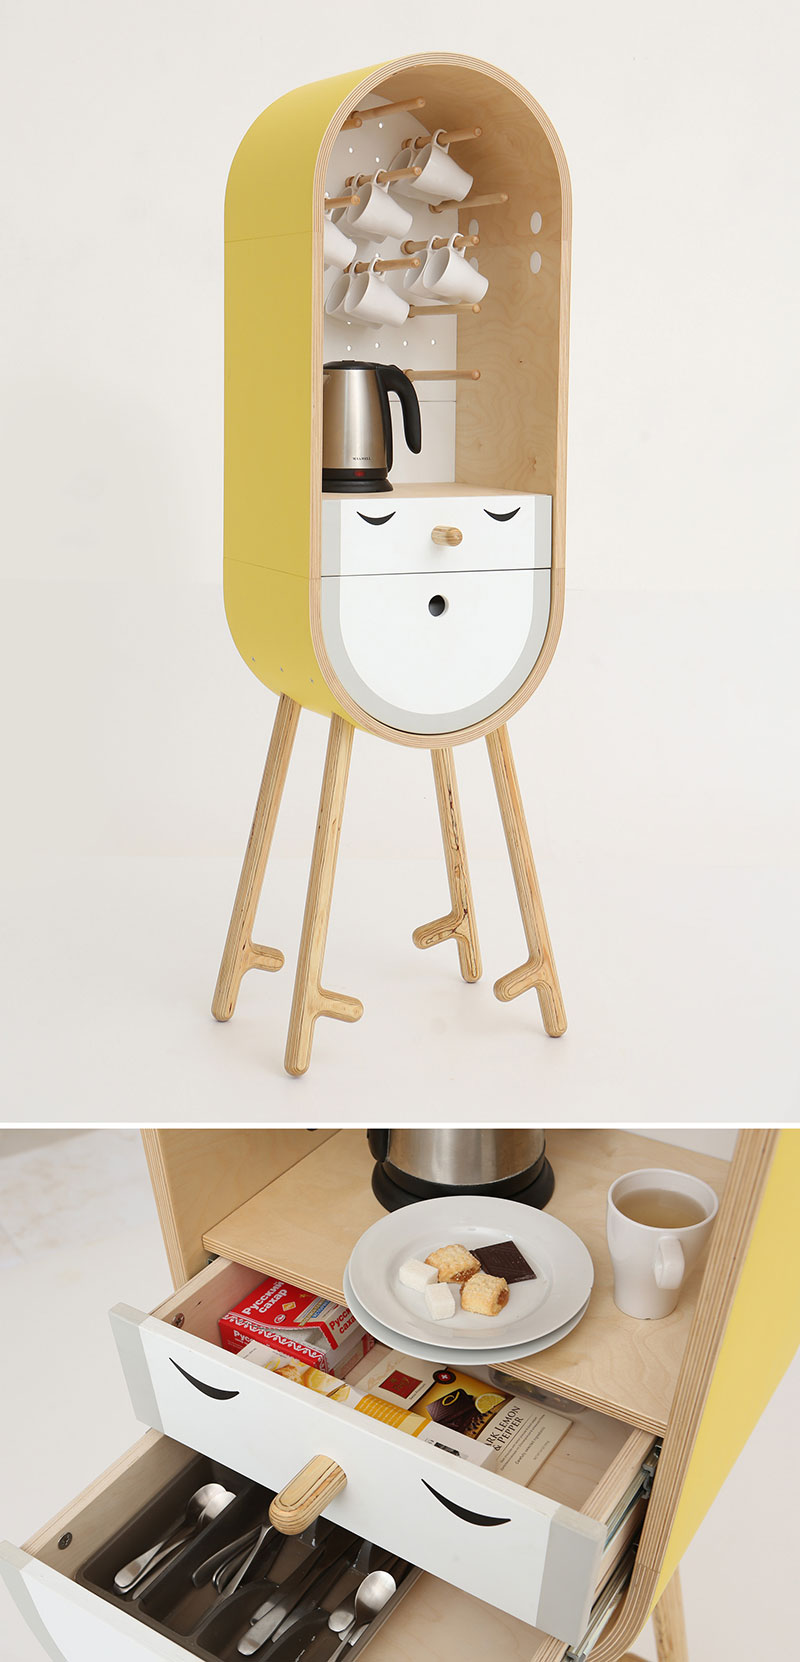 LOLO The Capsular Micro kitchen Kitchen Design